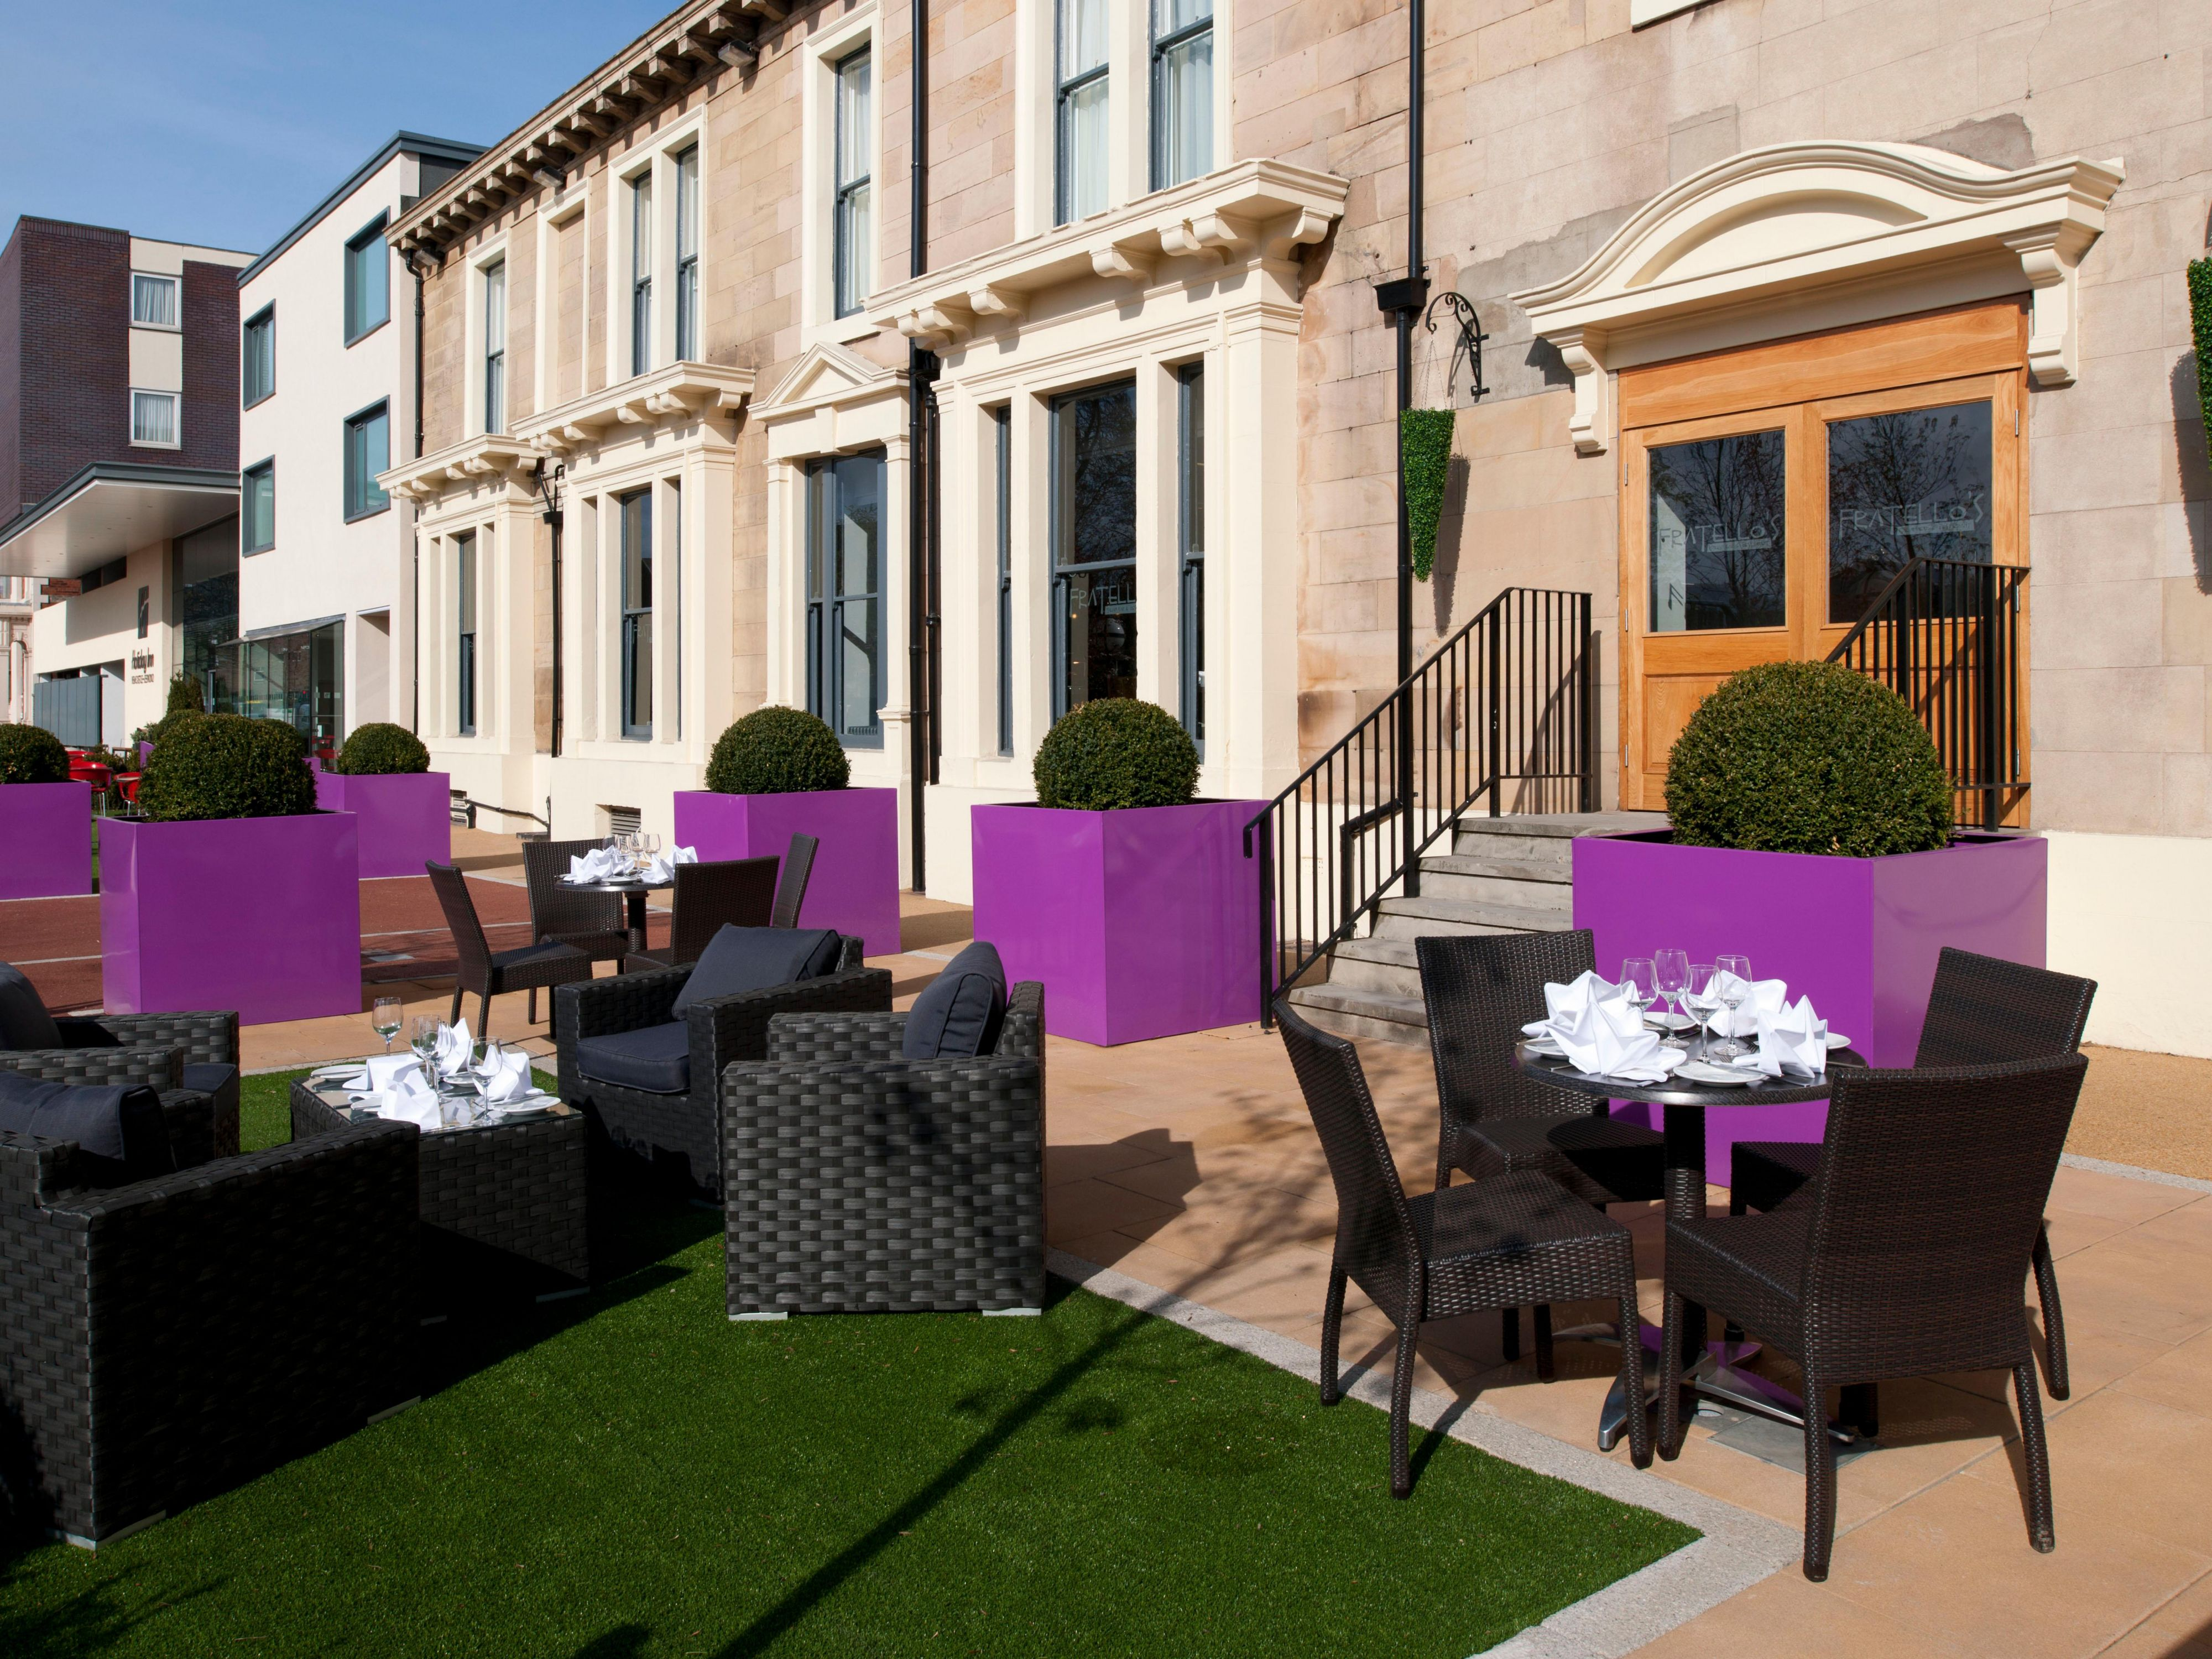 Holiday Inn Newcastle-Jesmond Outdoor Dining